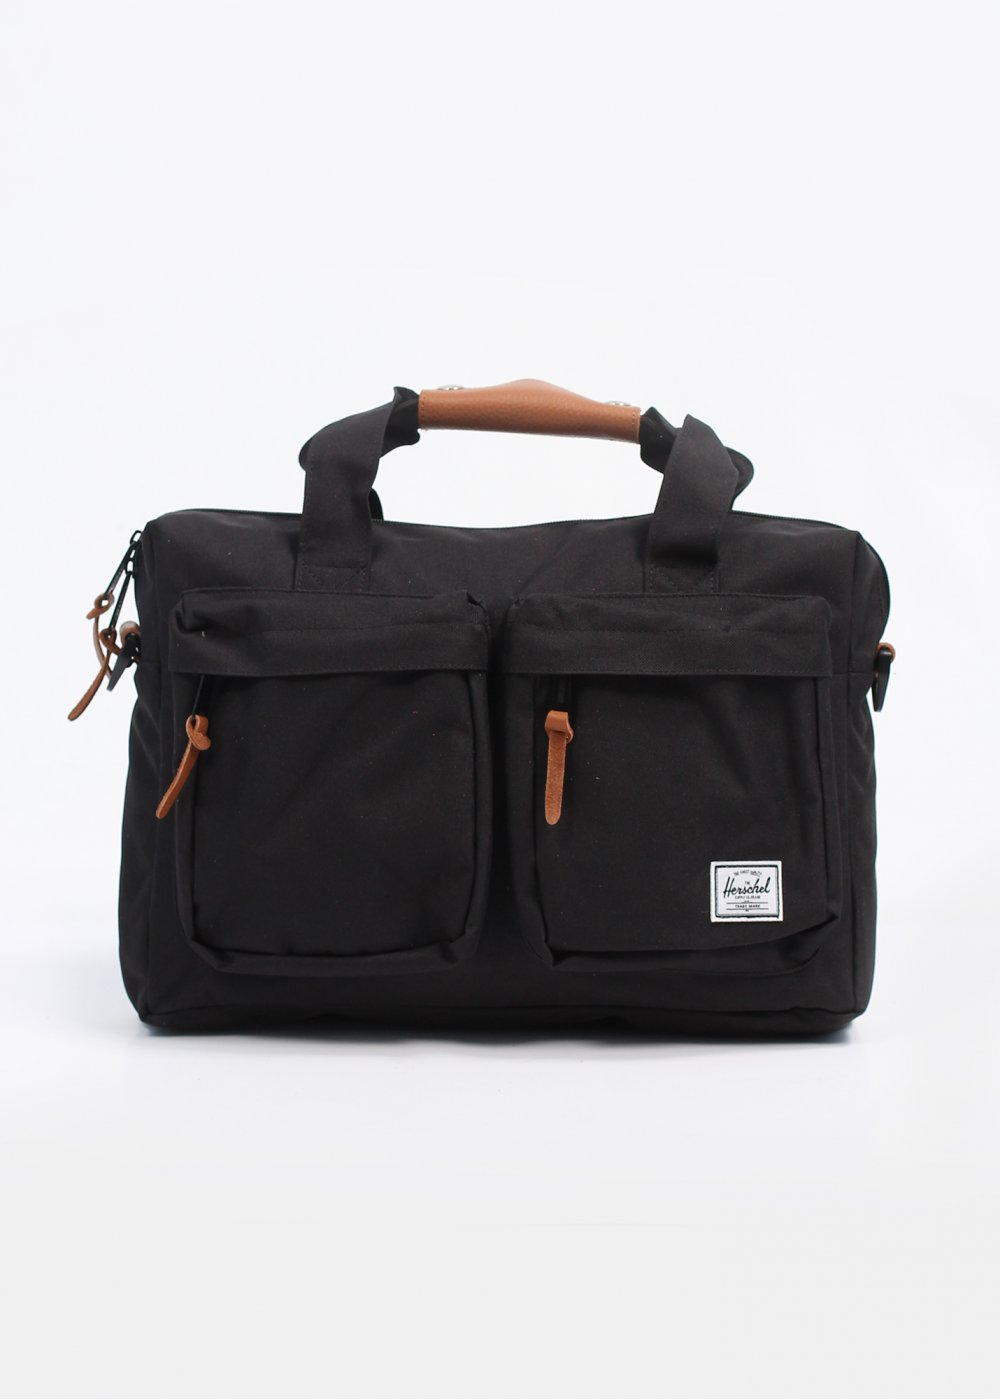 9ff9dc1cc0 Herschel Supply Co Totem Laptop Bag - Black